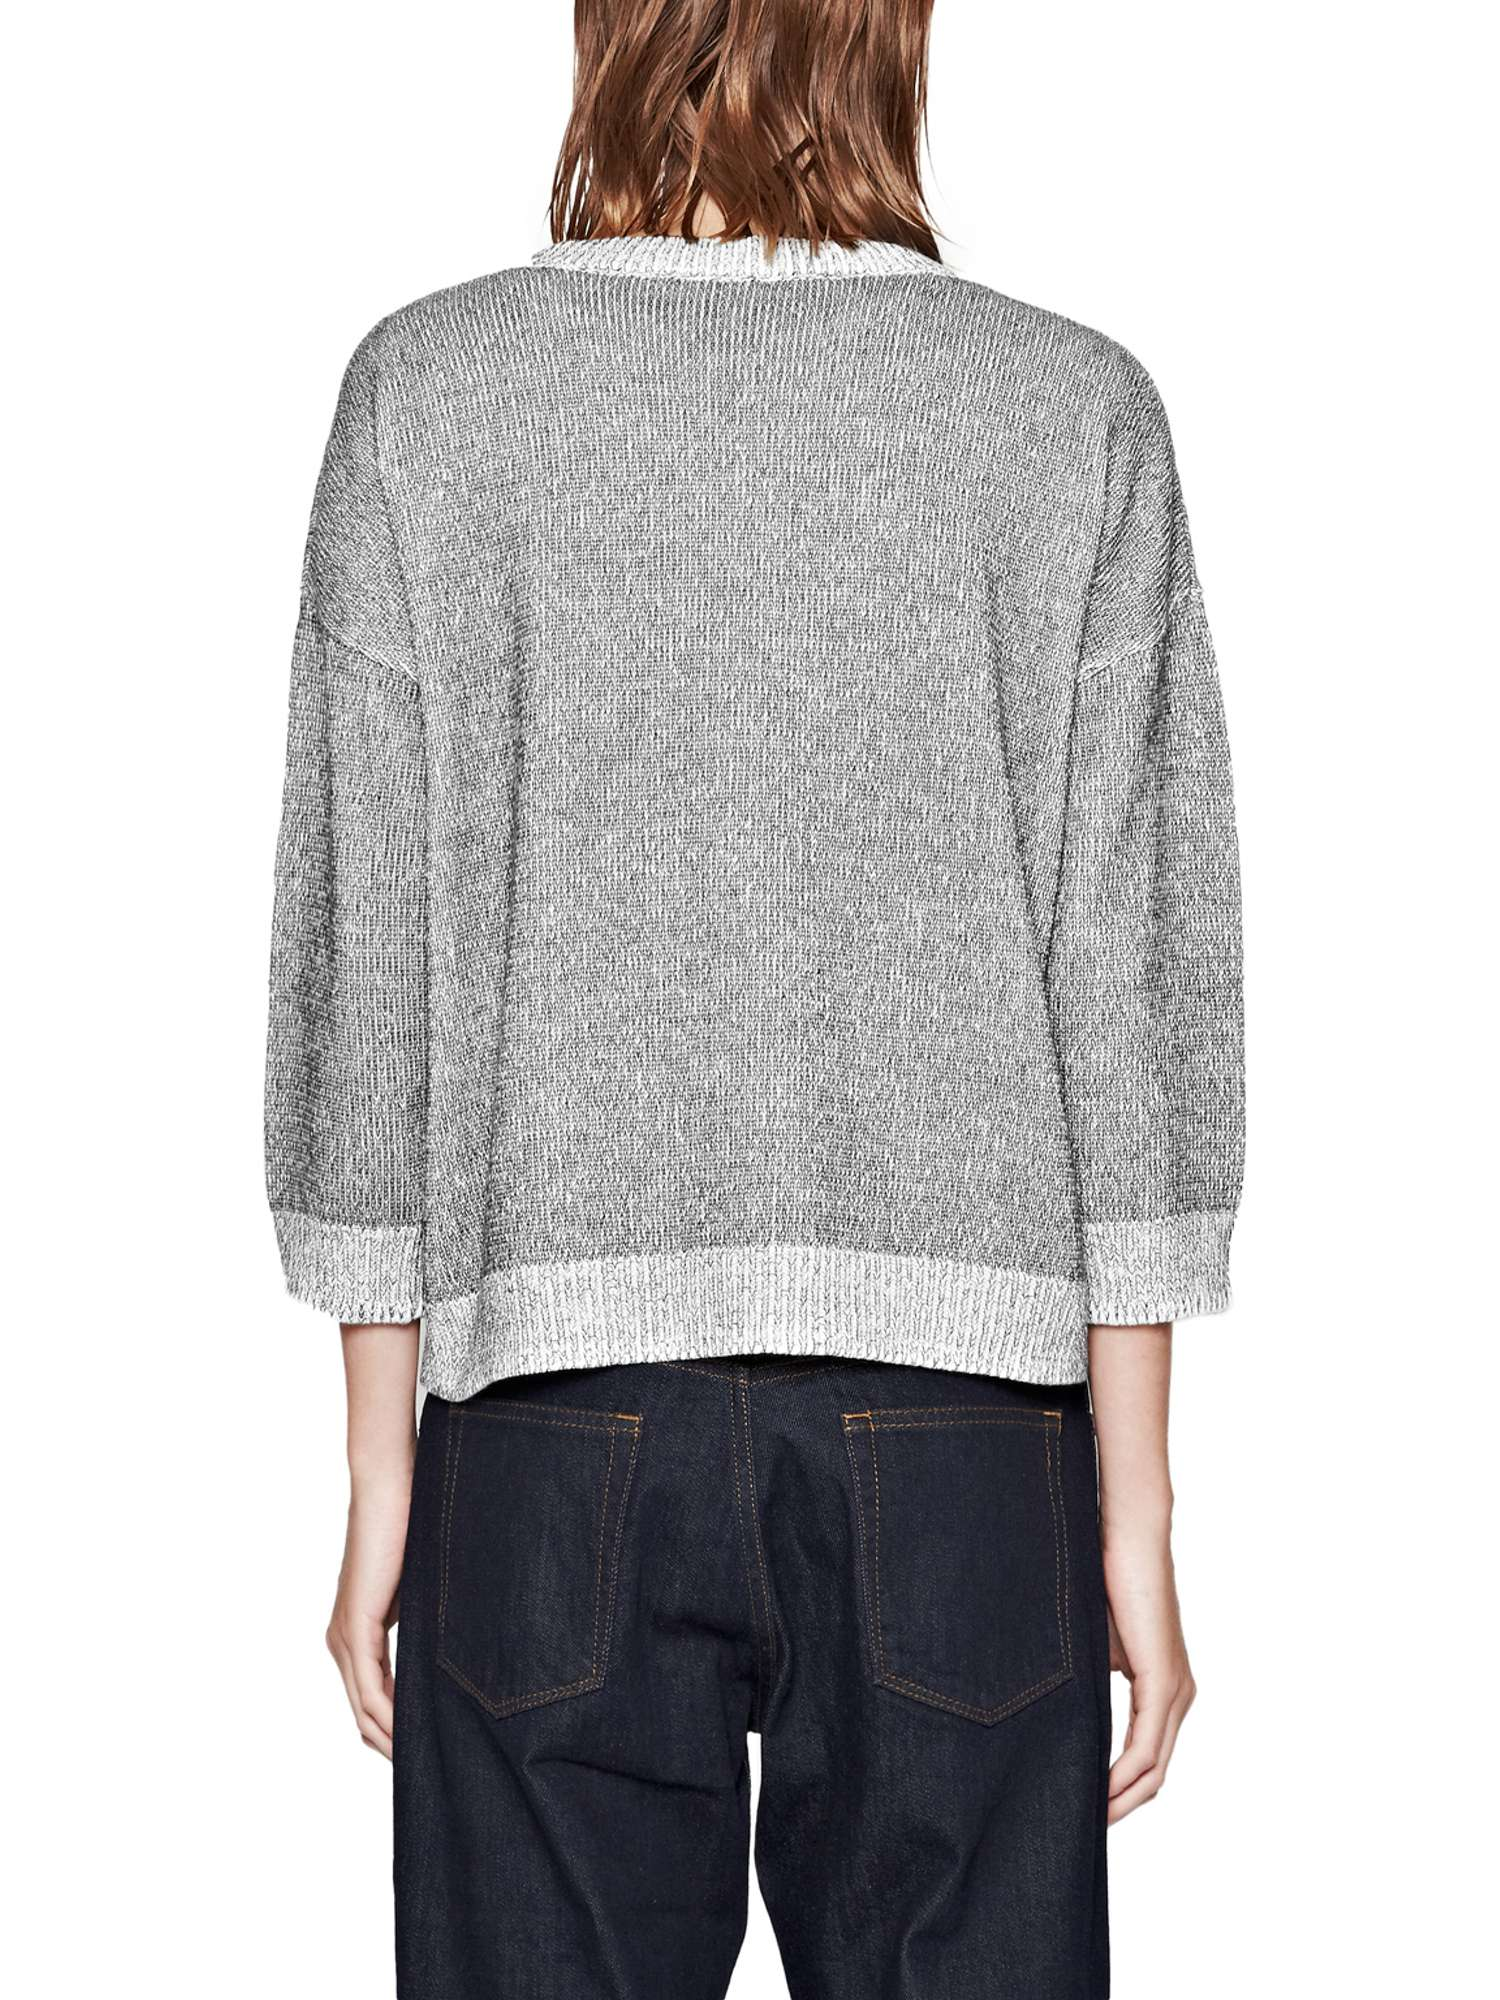 Knits French Jumper French Hollywood Connection Connection qz8x6x